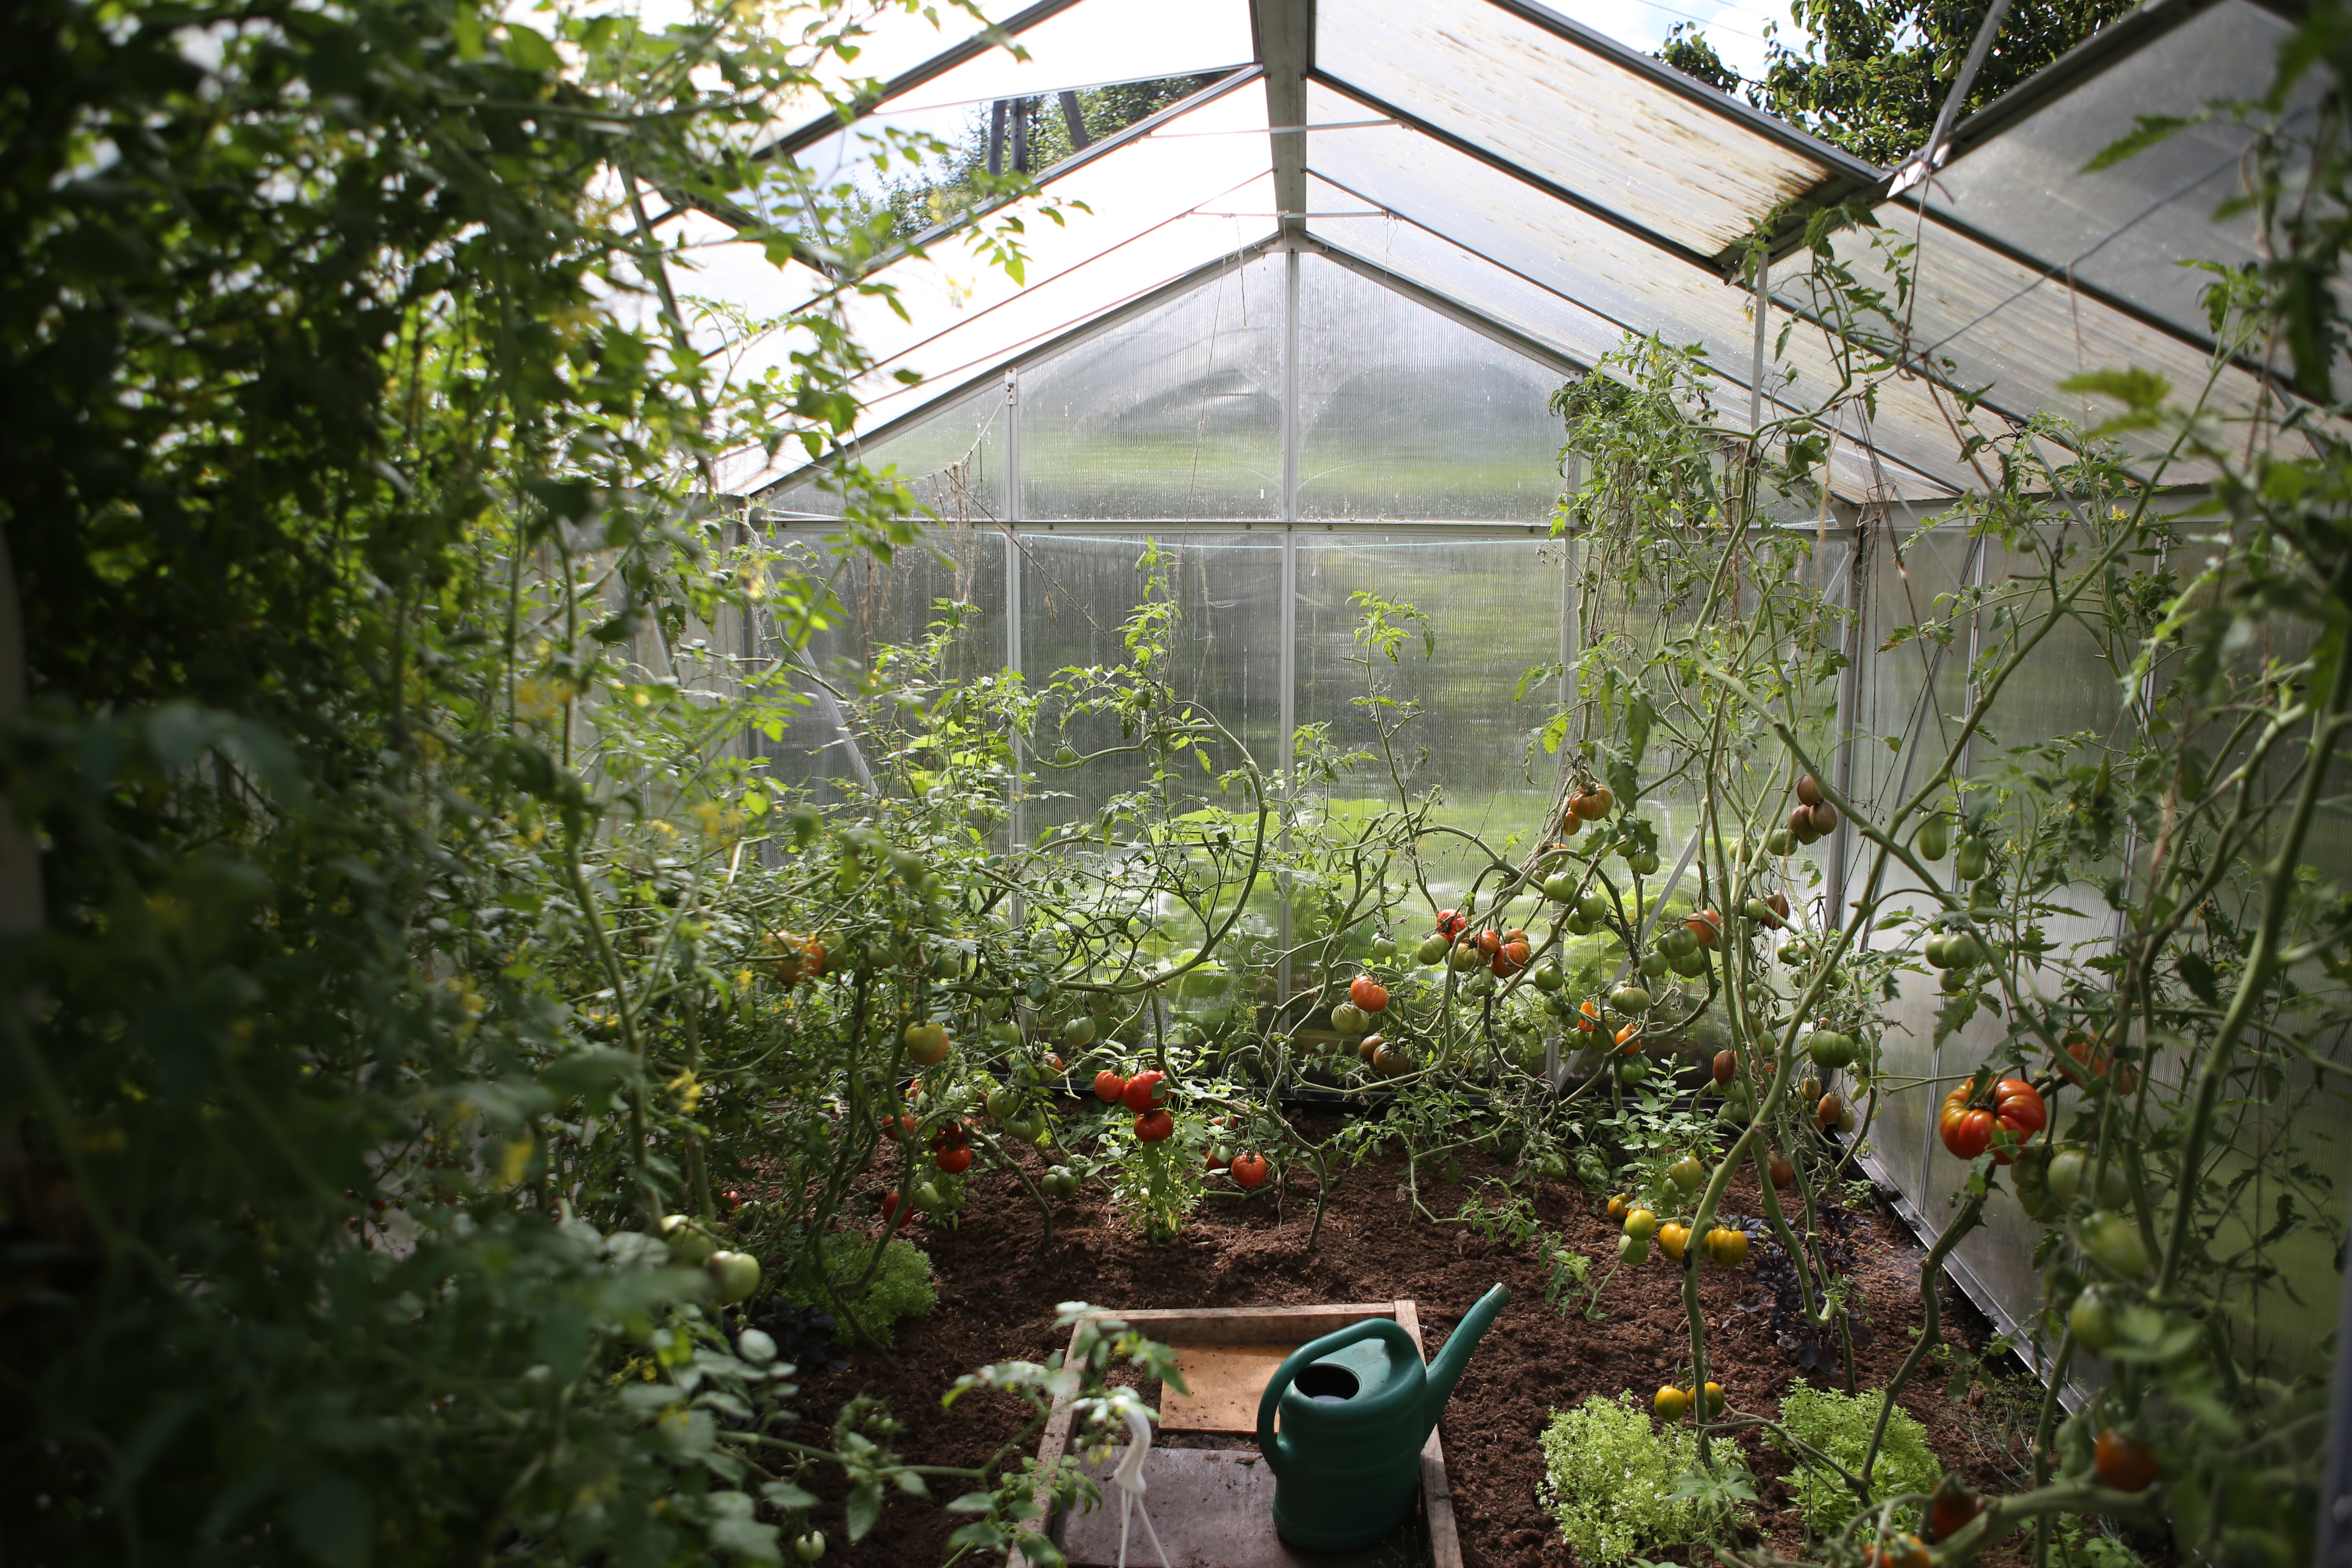 Use greenhouses to get another harvest after garden failures